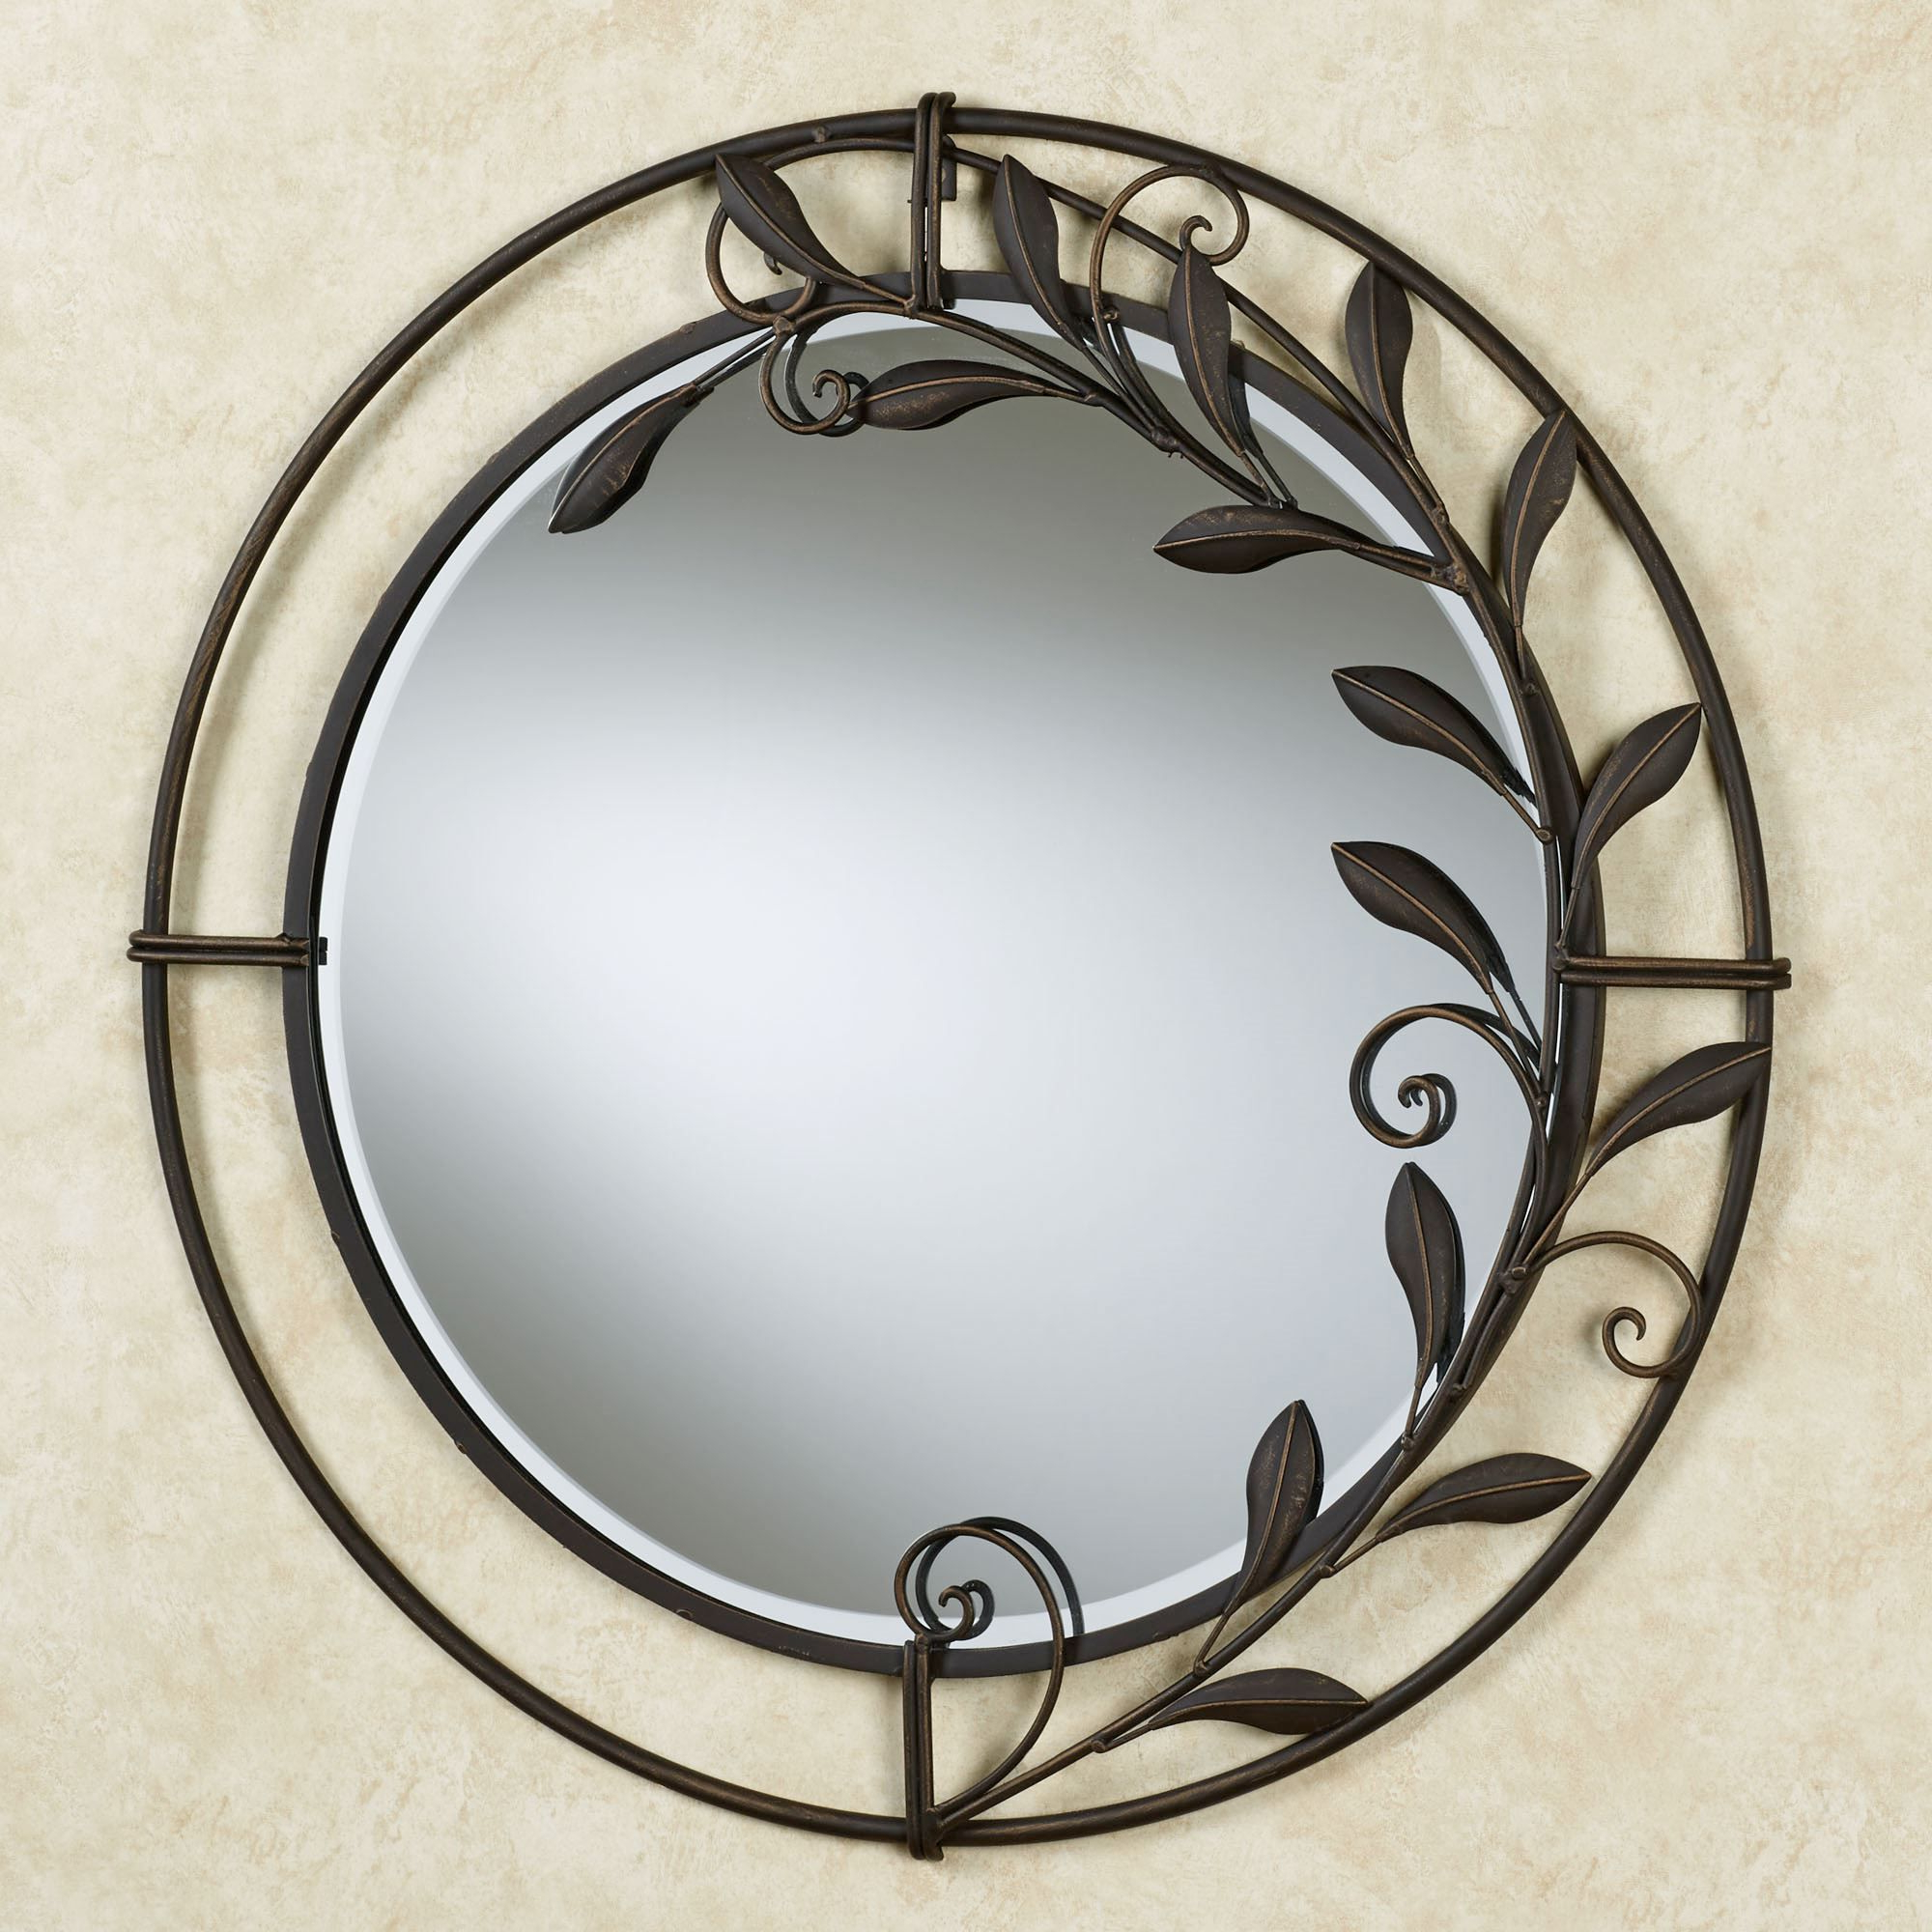 Round Metal Wall Mirrors Pertaining To Trendy Galeazzo Antique Bronze Round Metal Wall Mirror (Gallery 9 of 20)